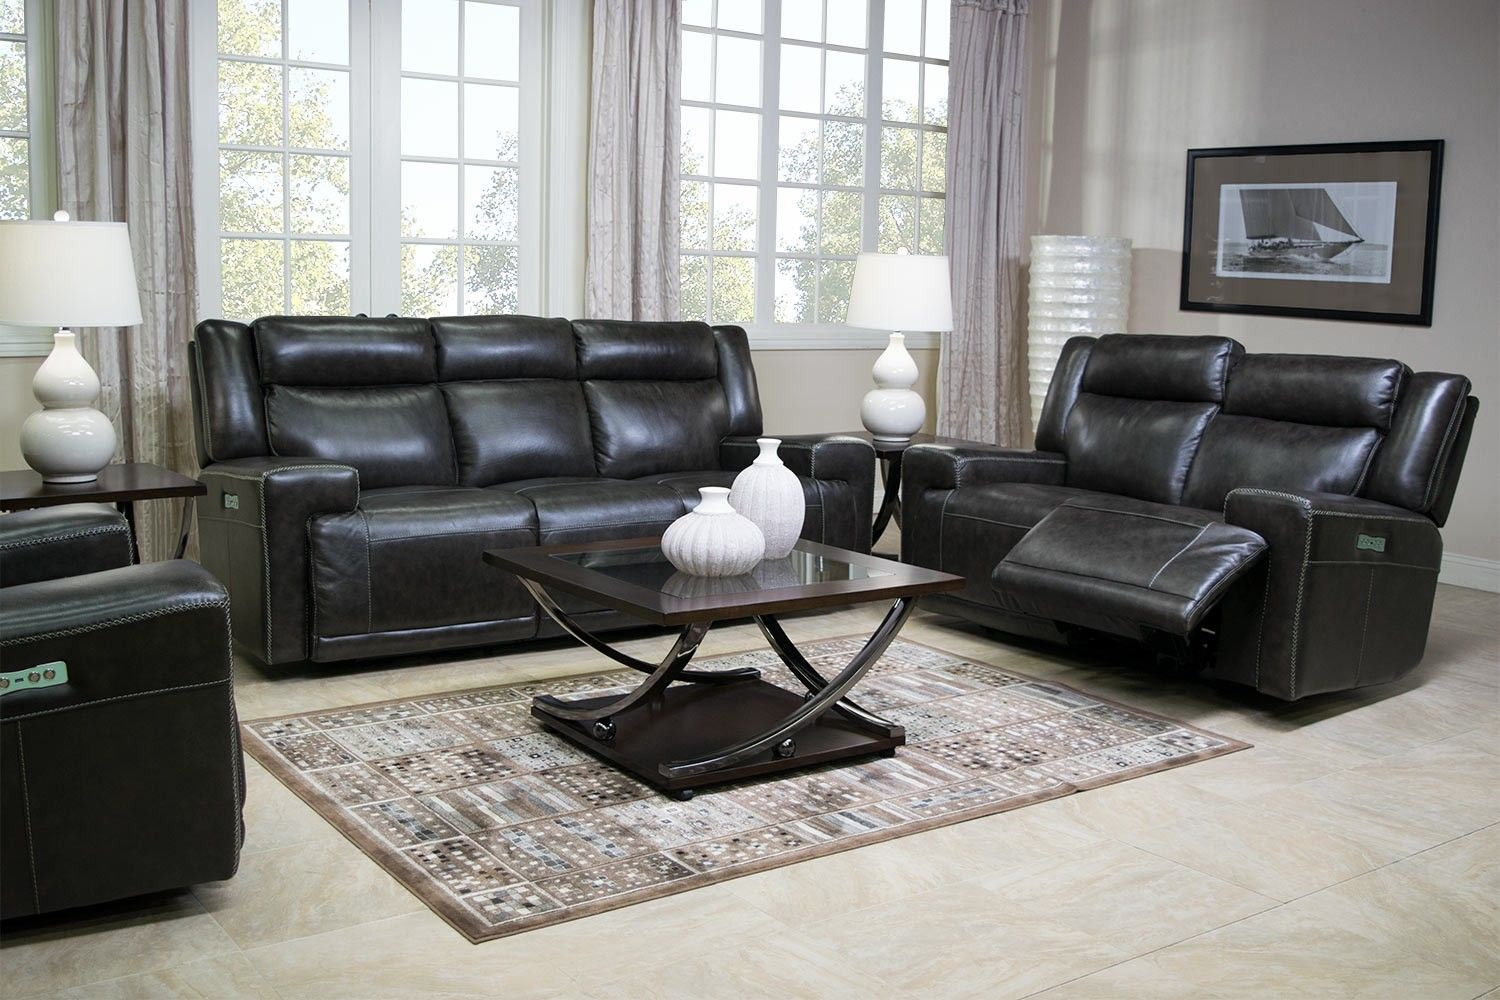 Leather Reclining Living Room Sets Rancor Leather Seating Power Reclining Living Room Media Image 1